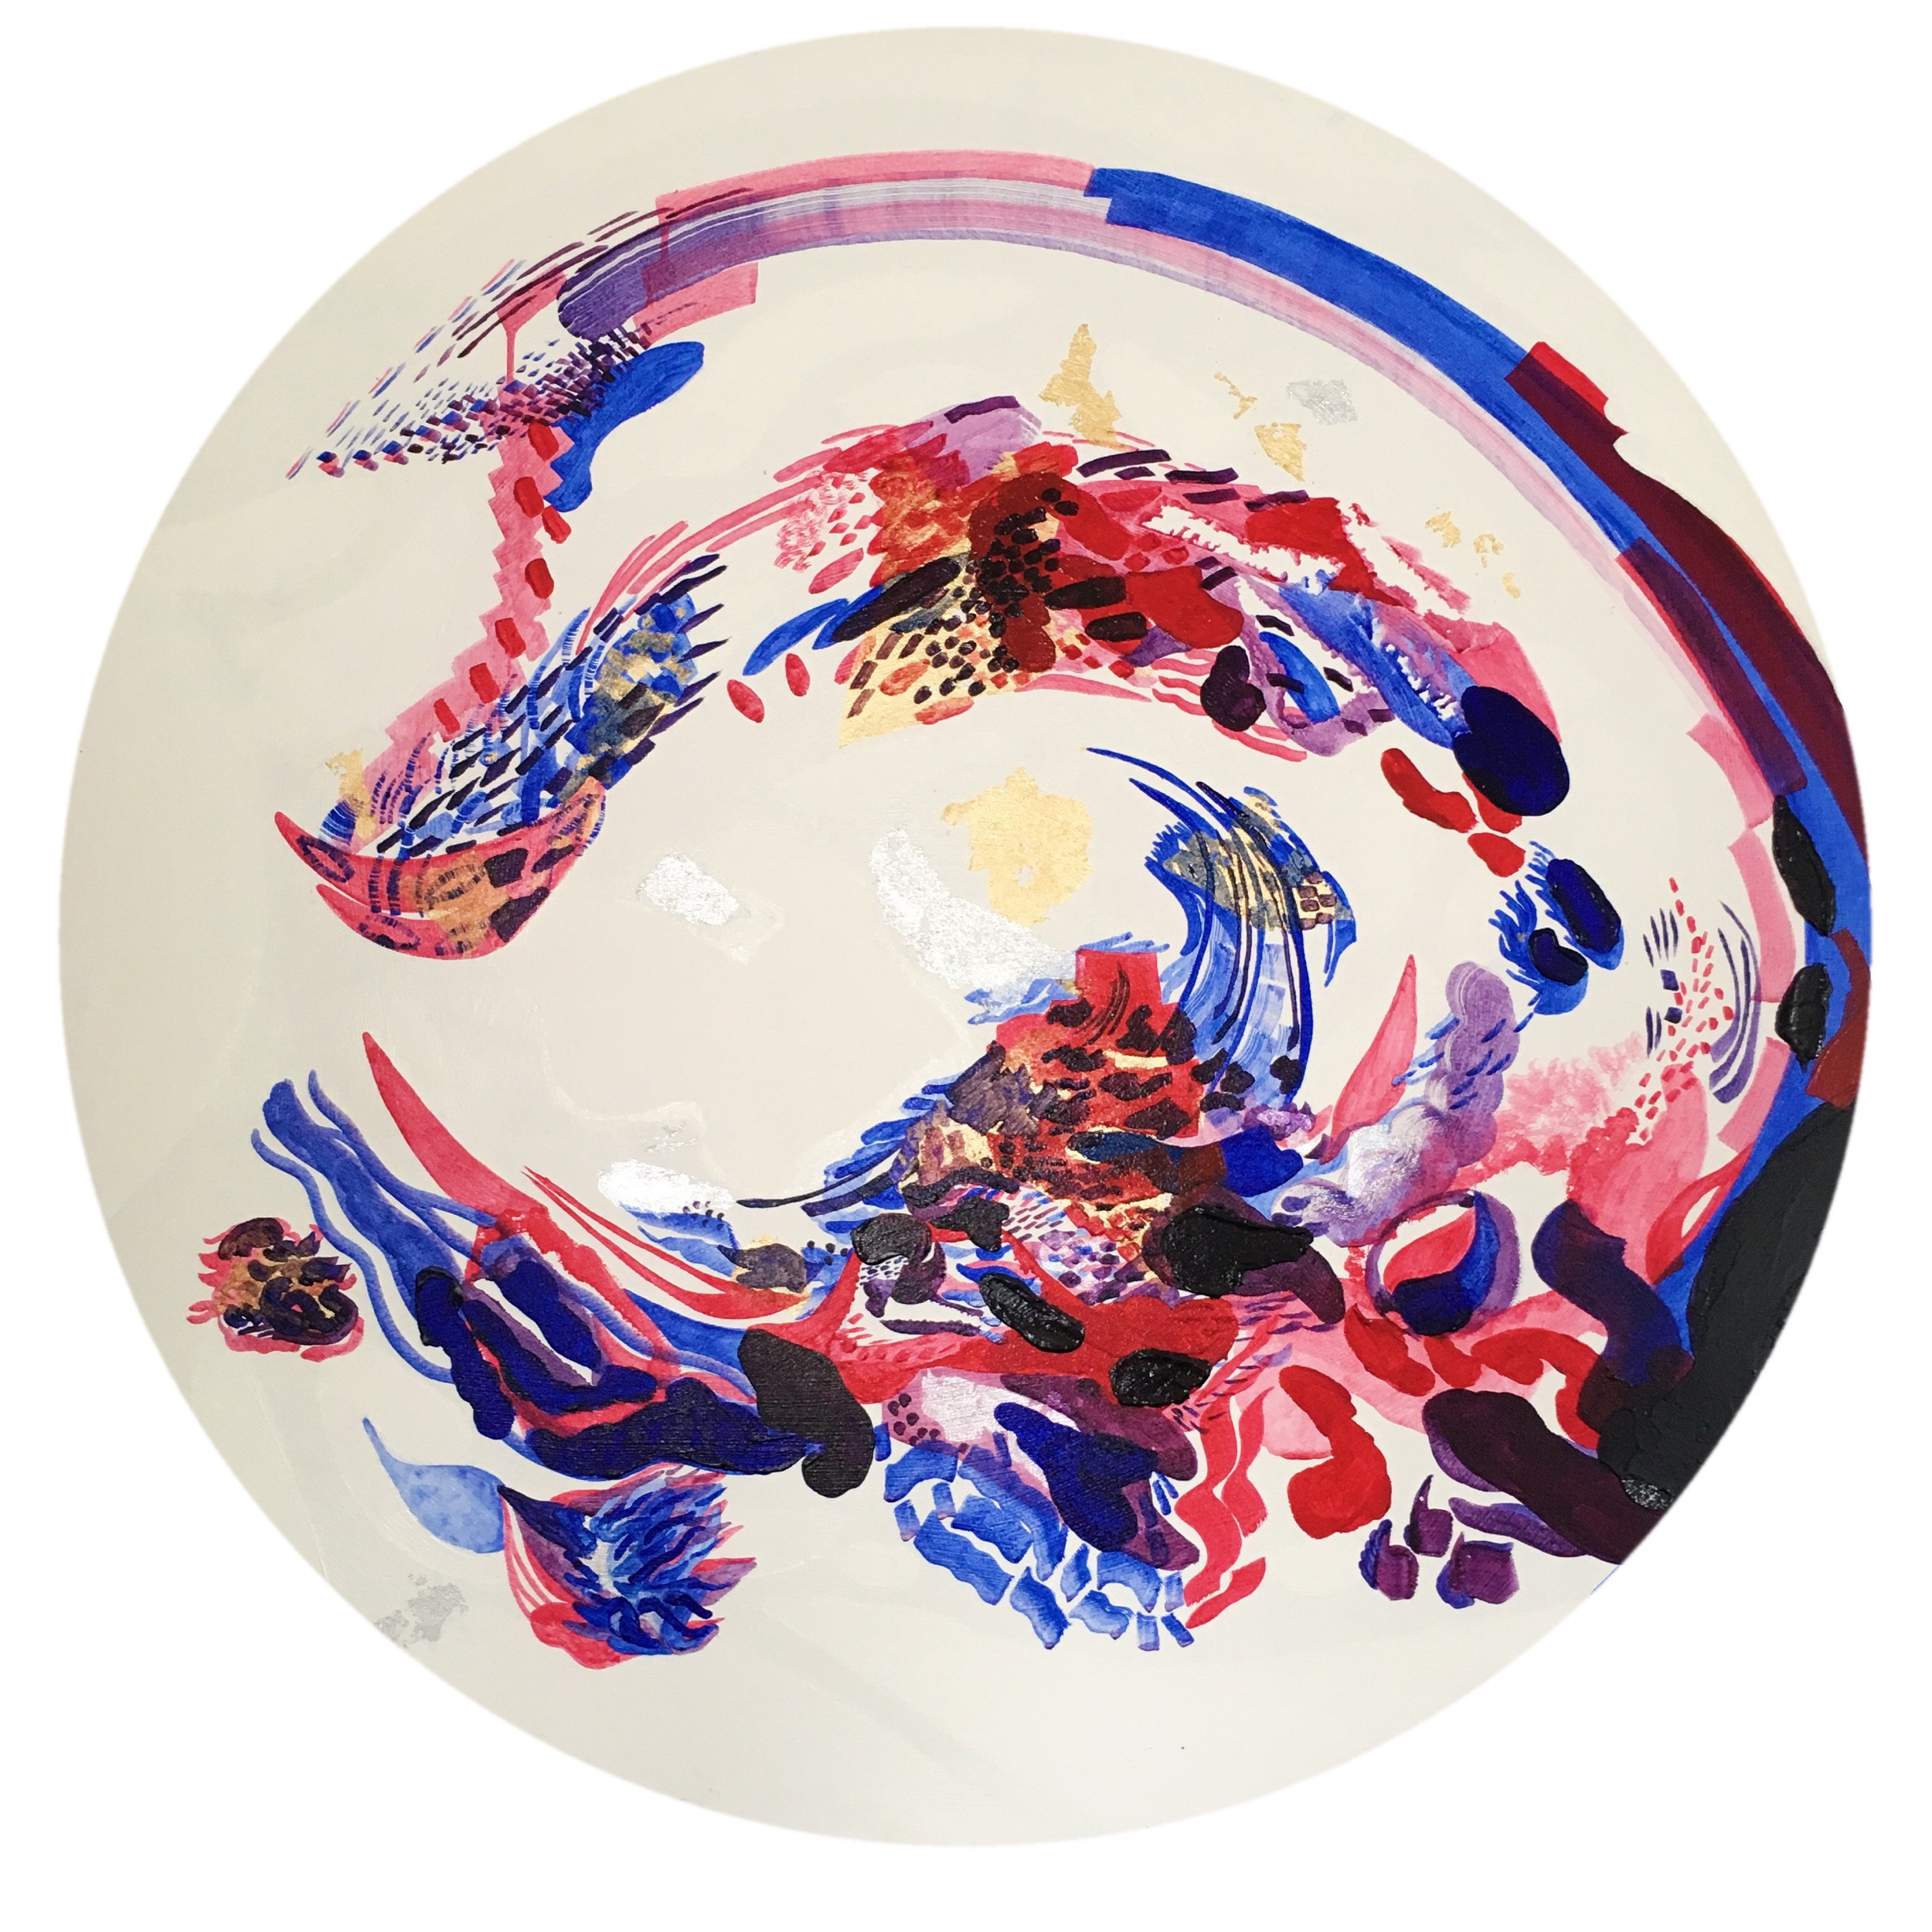 W O N D E R.  Acrylic & imitation Gold Leaf on Canvas  1m diameter.  £850   Click here to make a purchase inquiry.